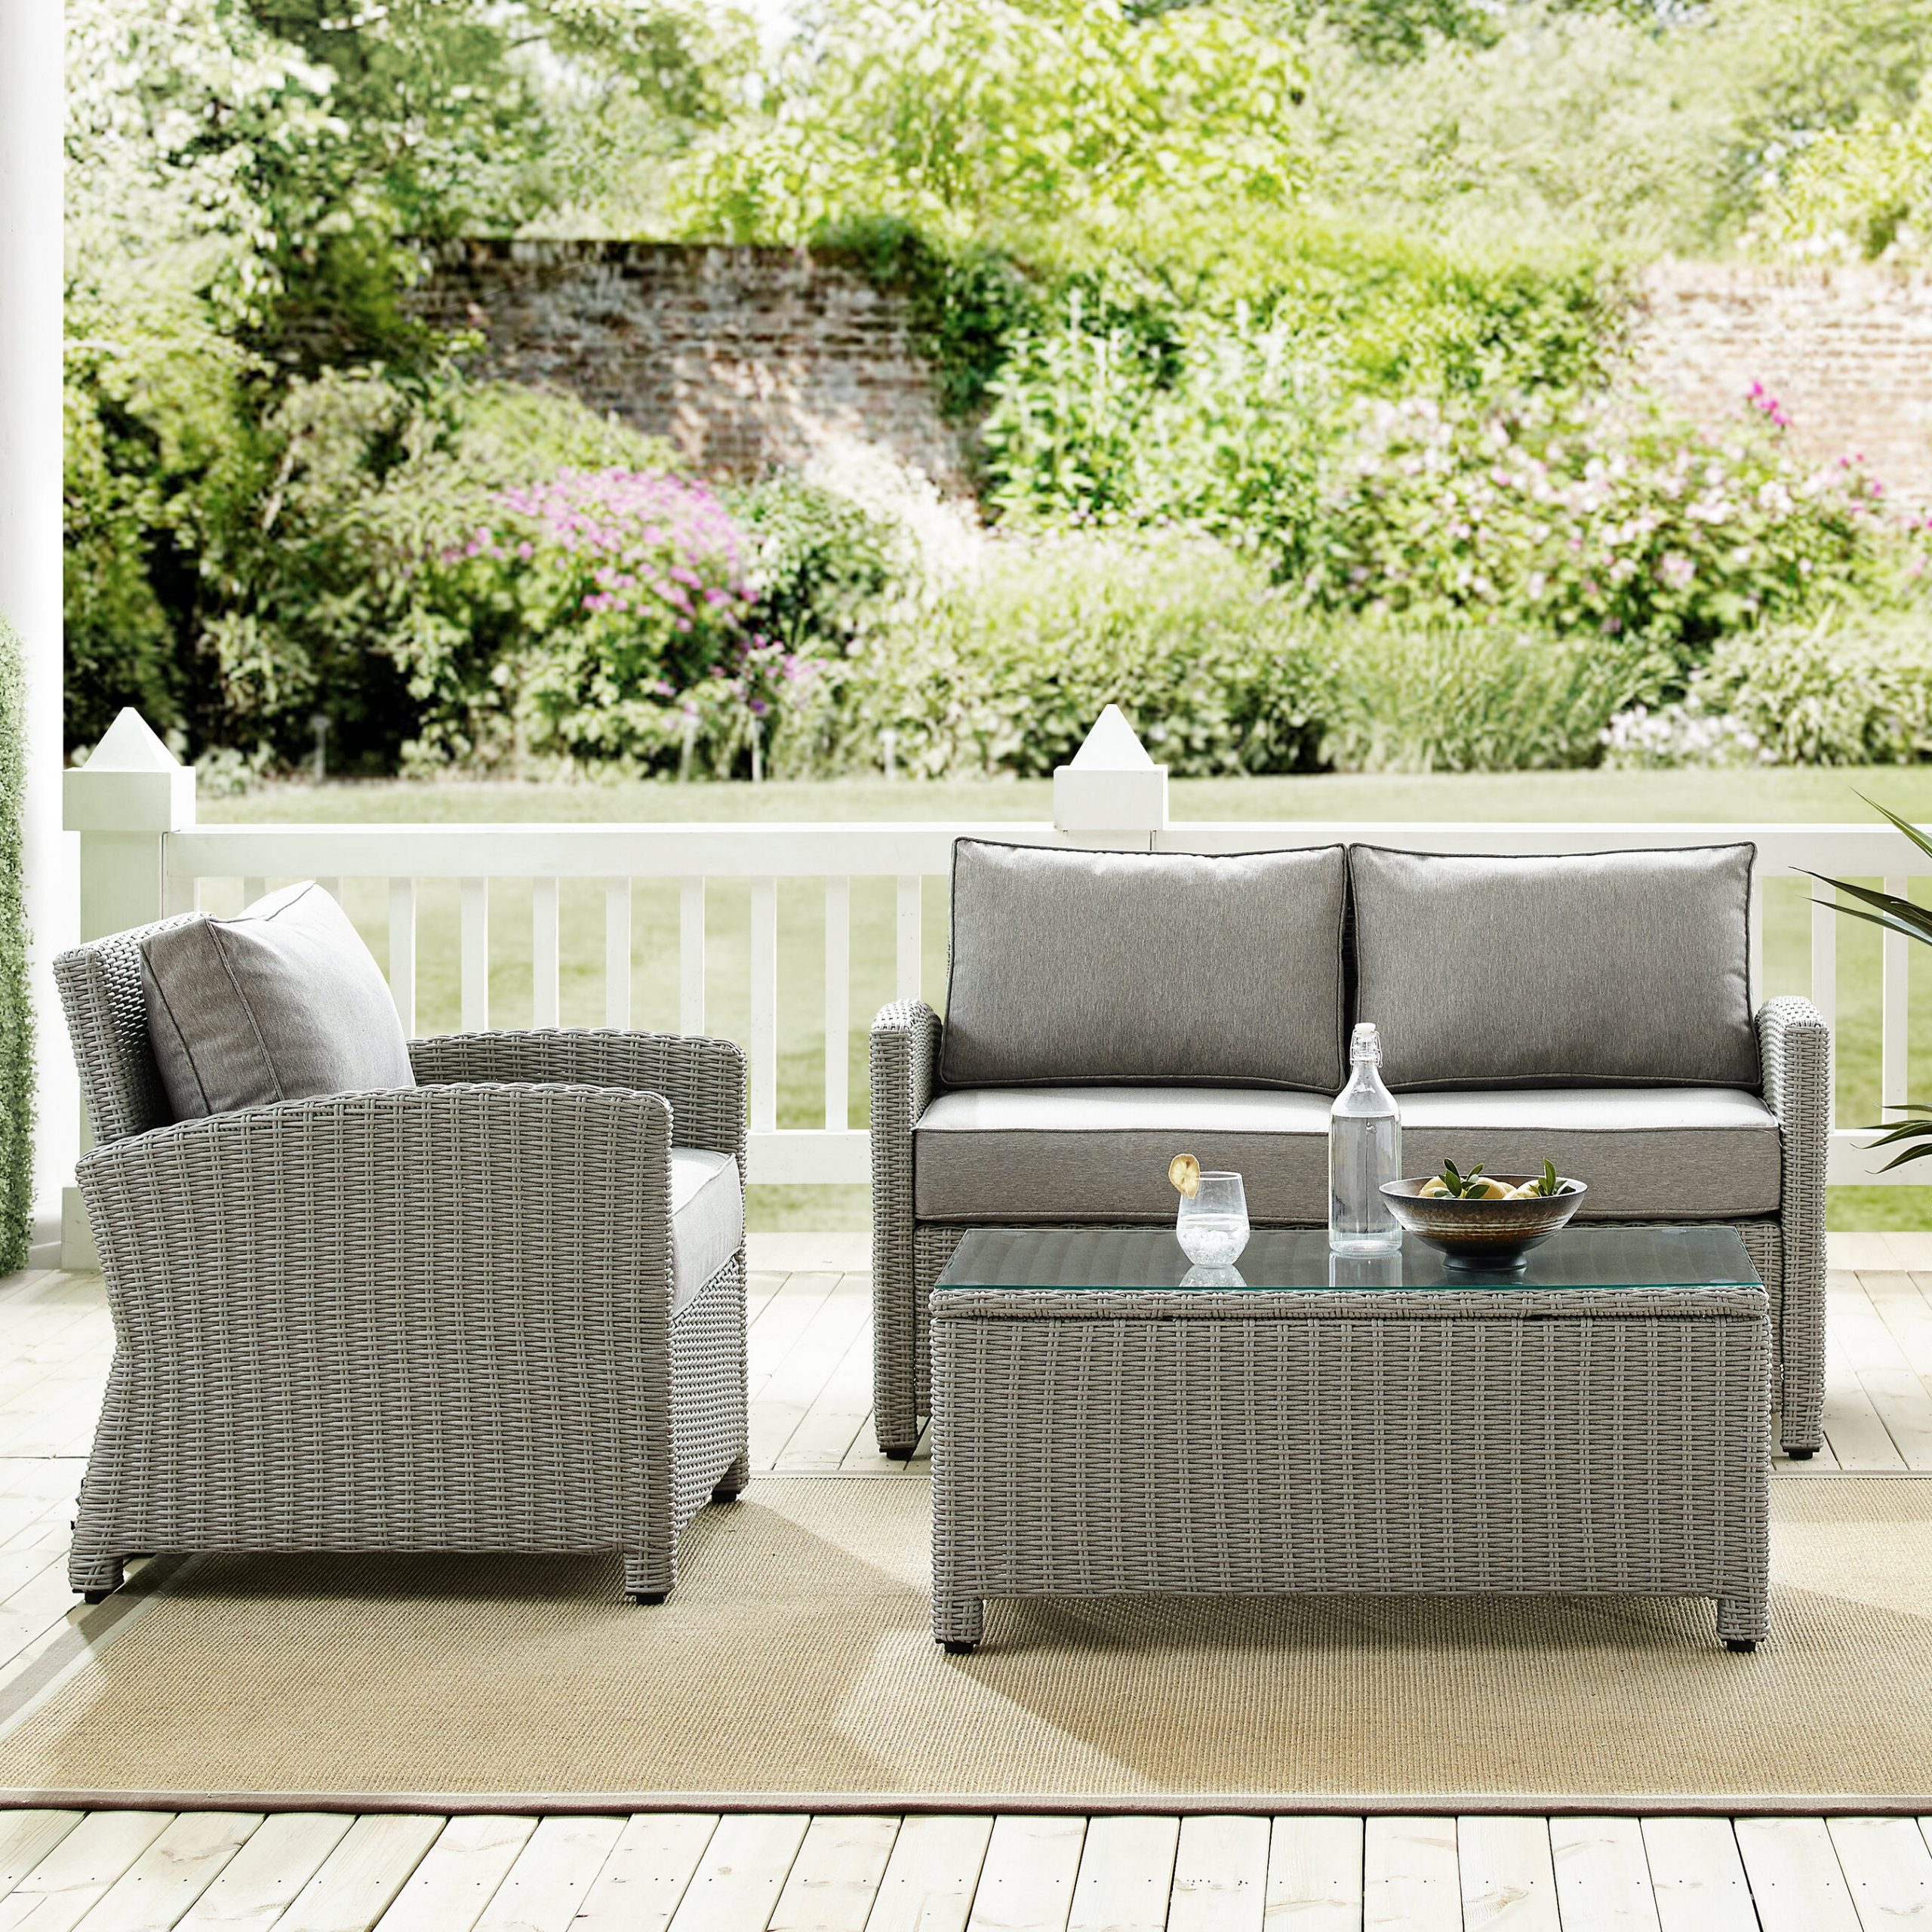 Lawson Patio Sofas With Cushions Intended For Most Recent Lawson 3 Piece Sofa Seating Group With Cushions (View 12 of 25)